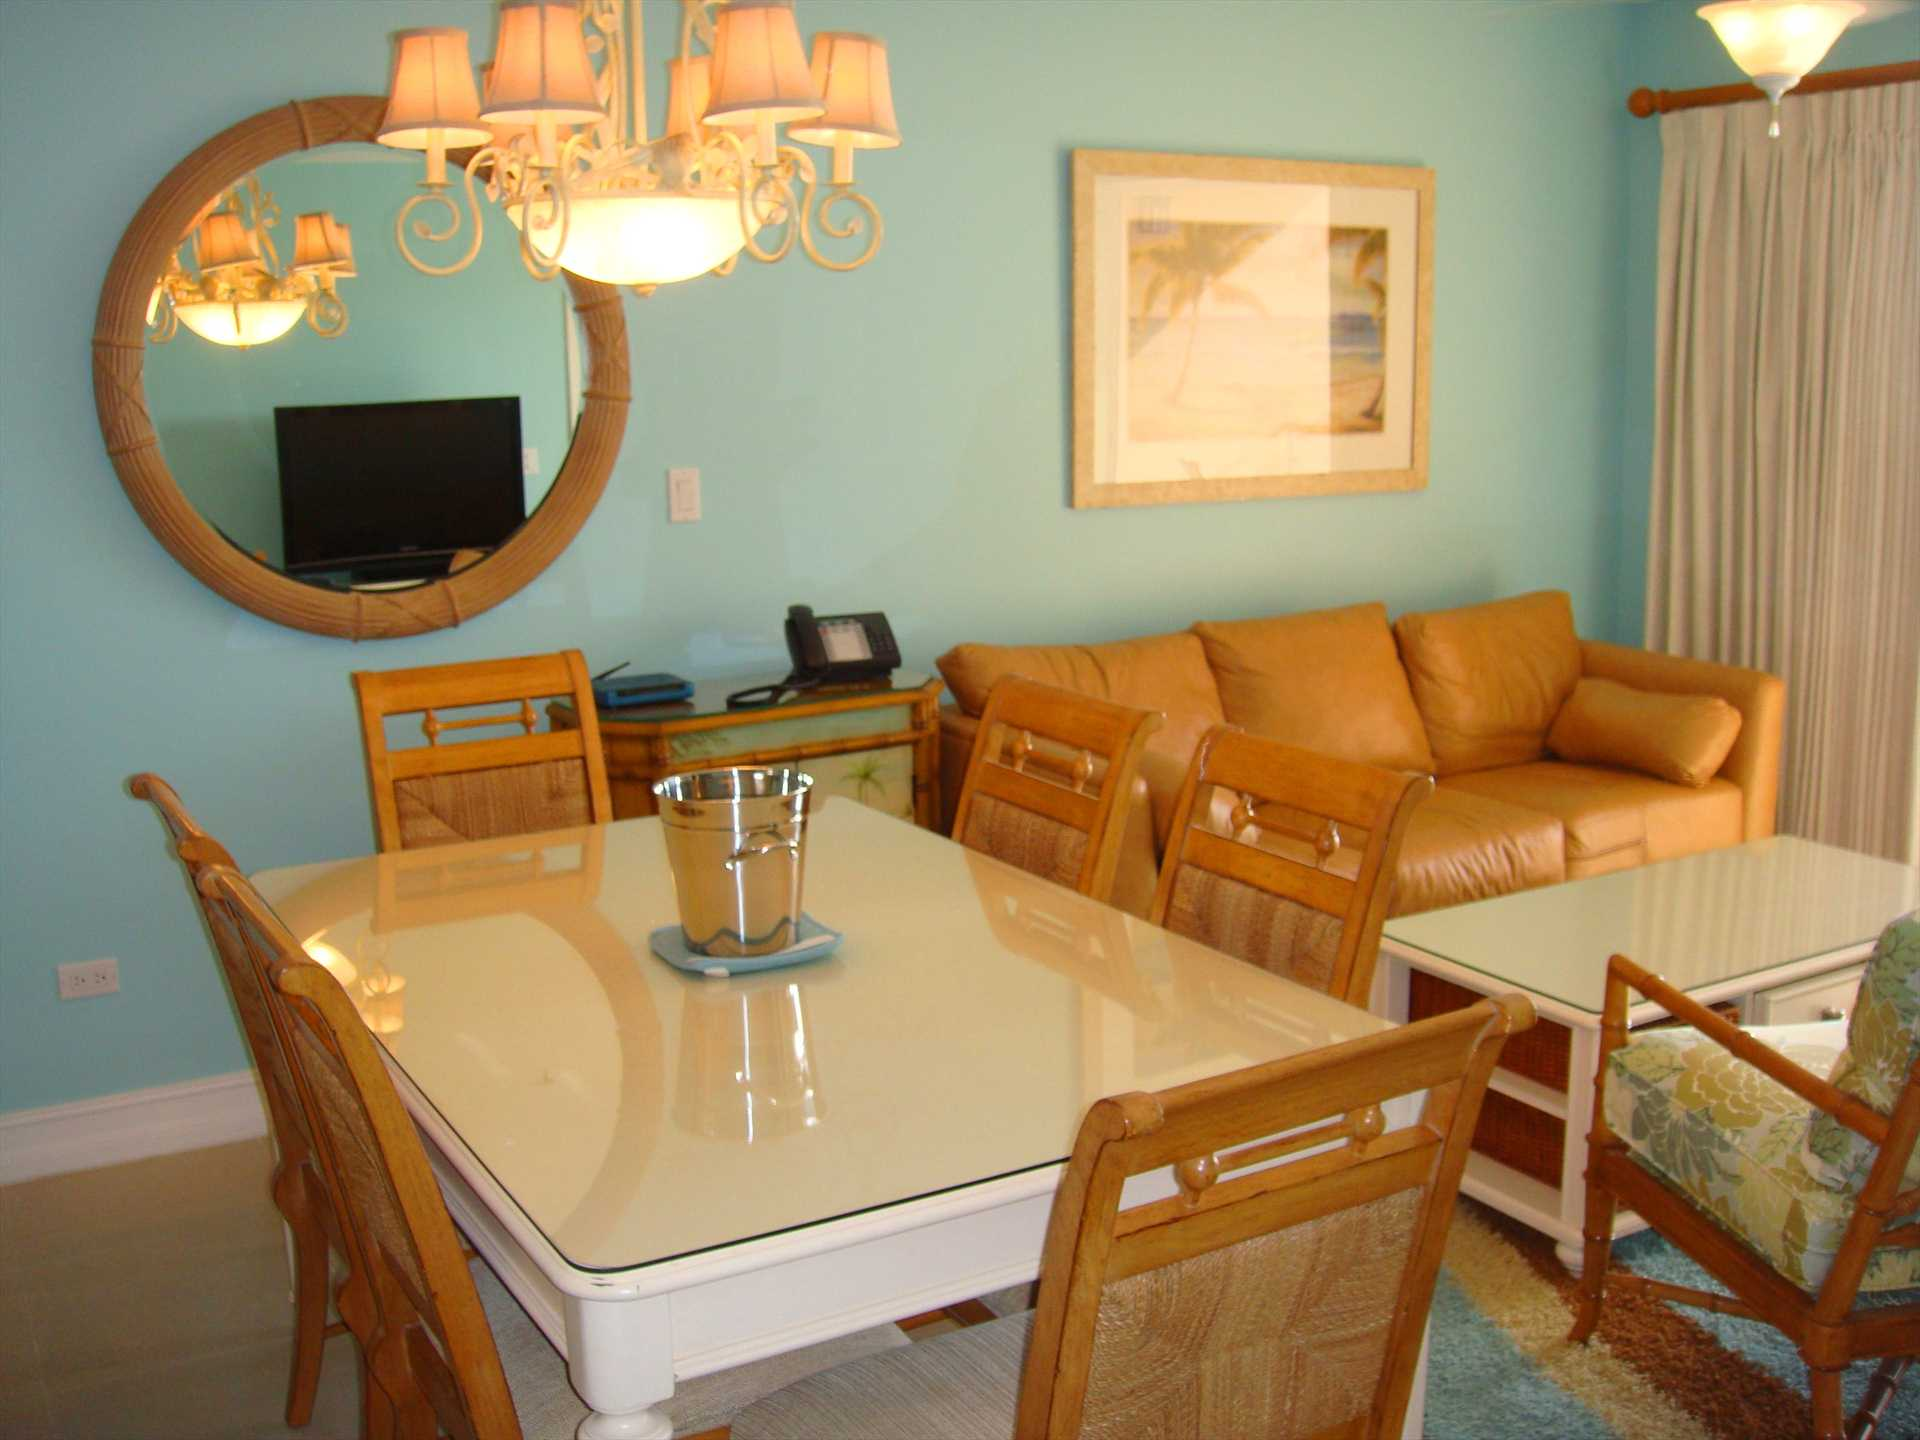 Dine, lounge, watch HDTV while you enjoy the ocean view through the balcony....